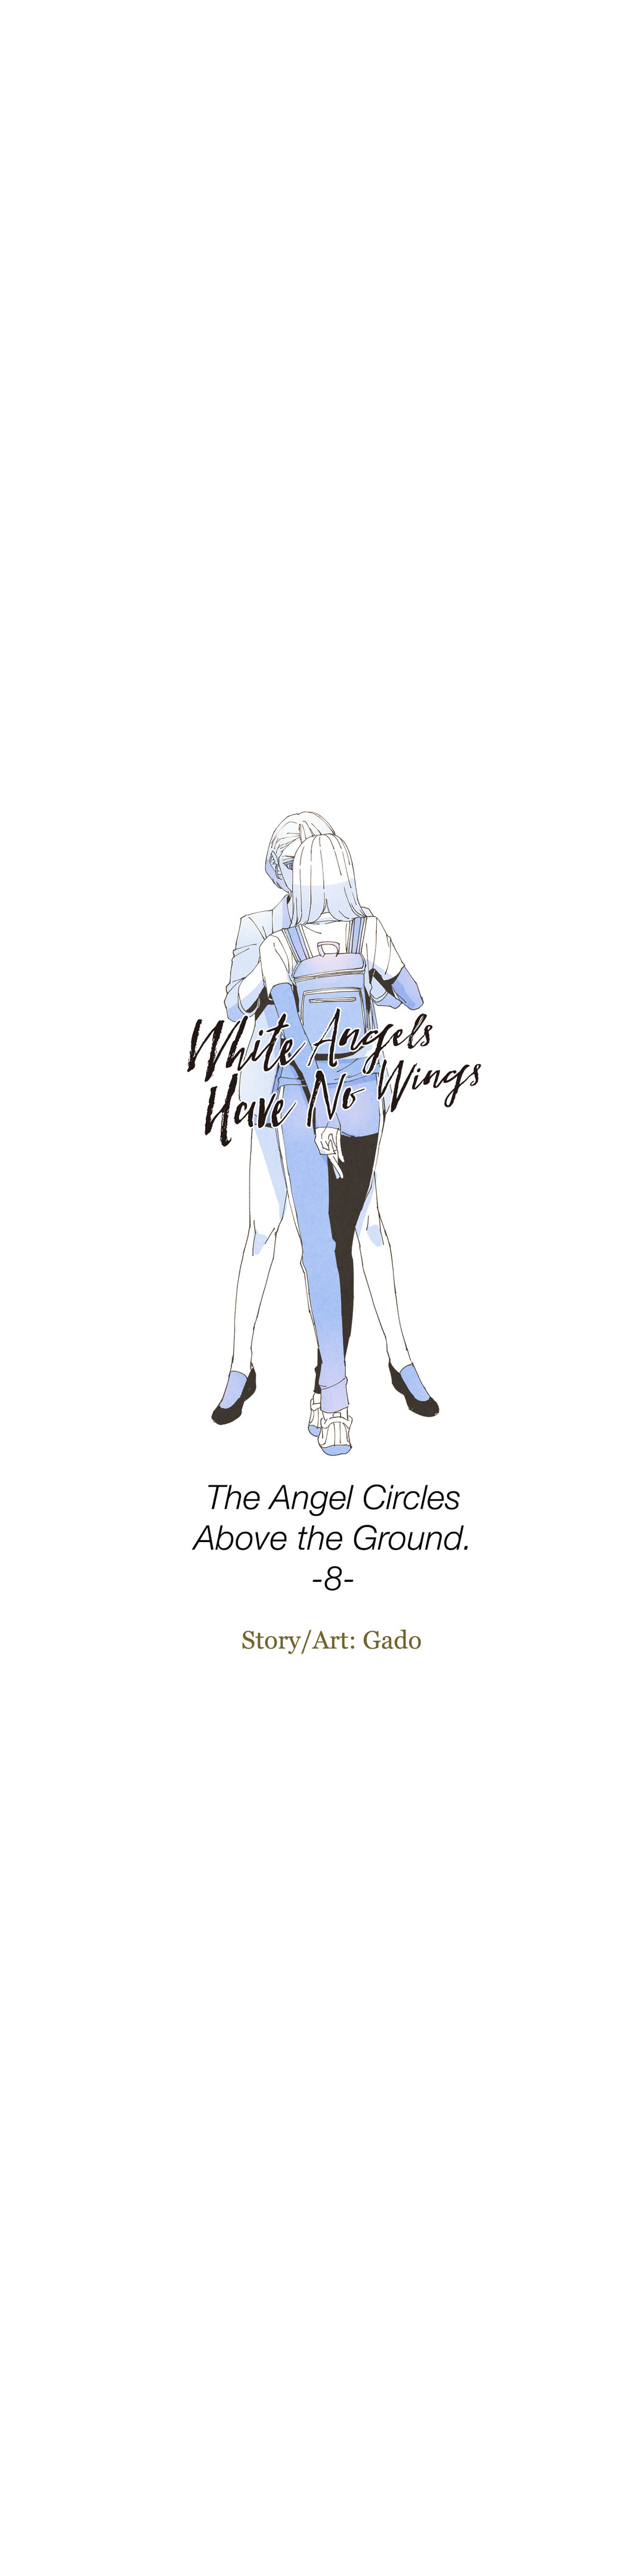 White Angels Have No Wings - Chapter 45